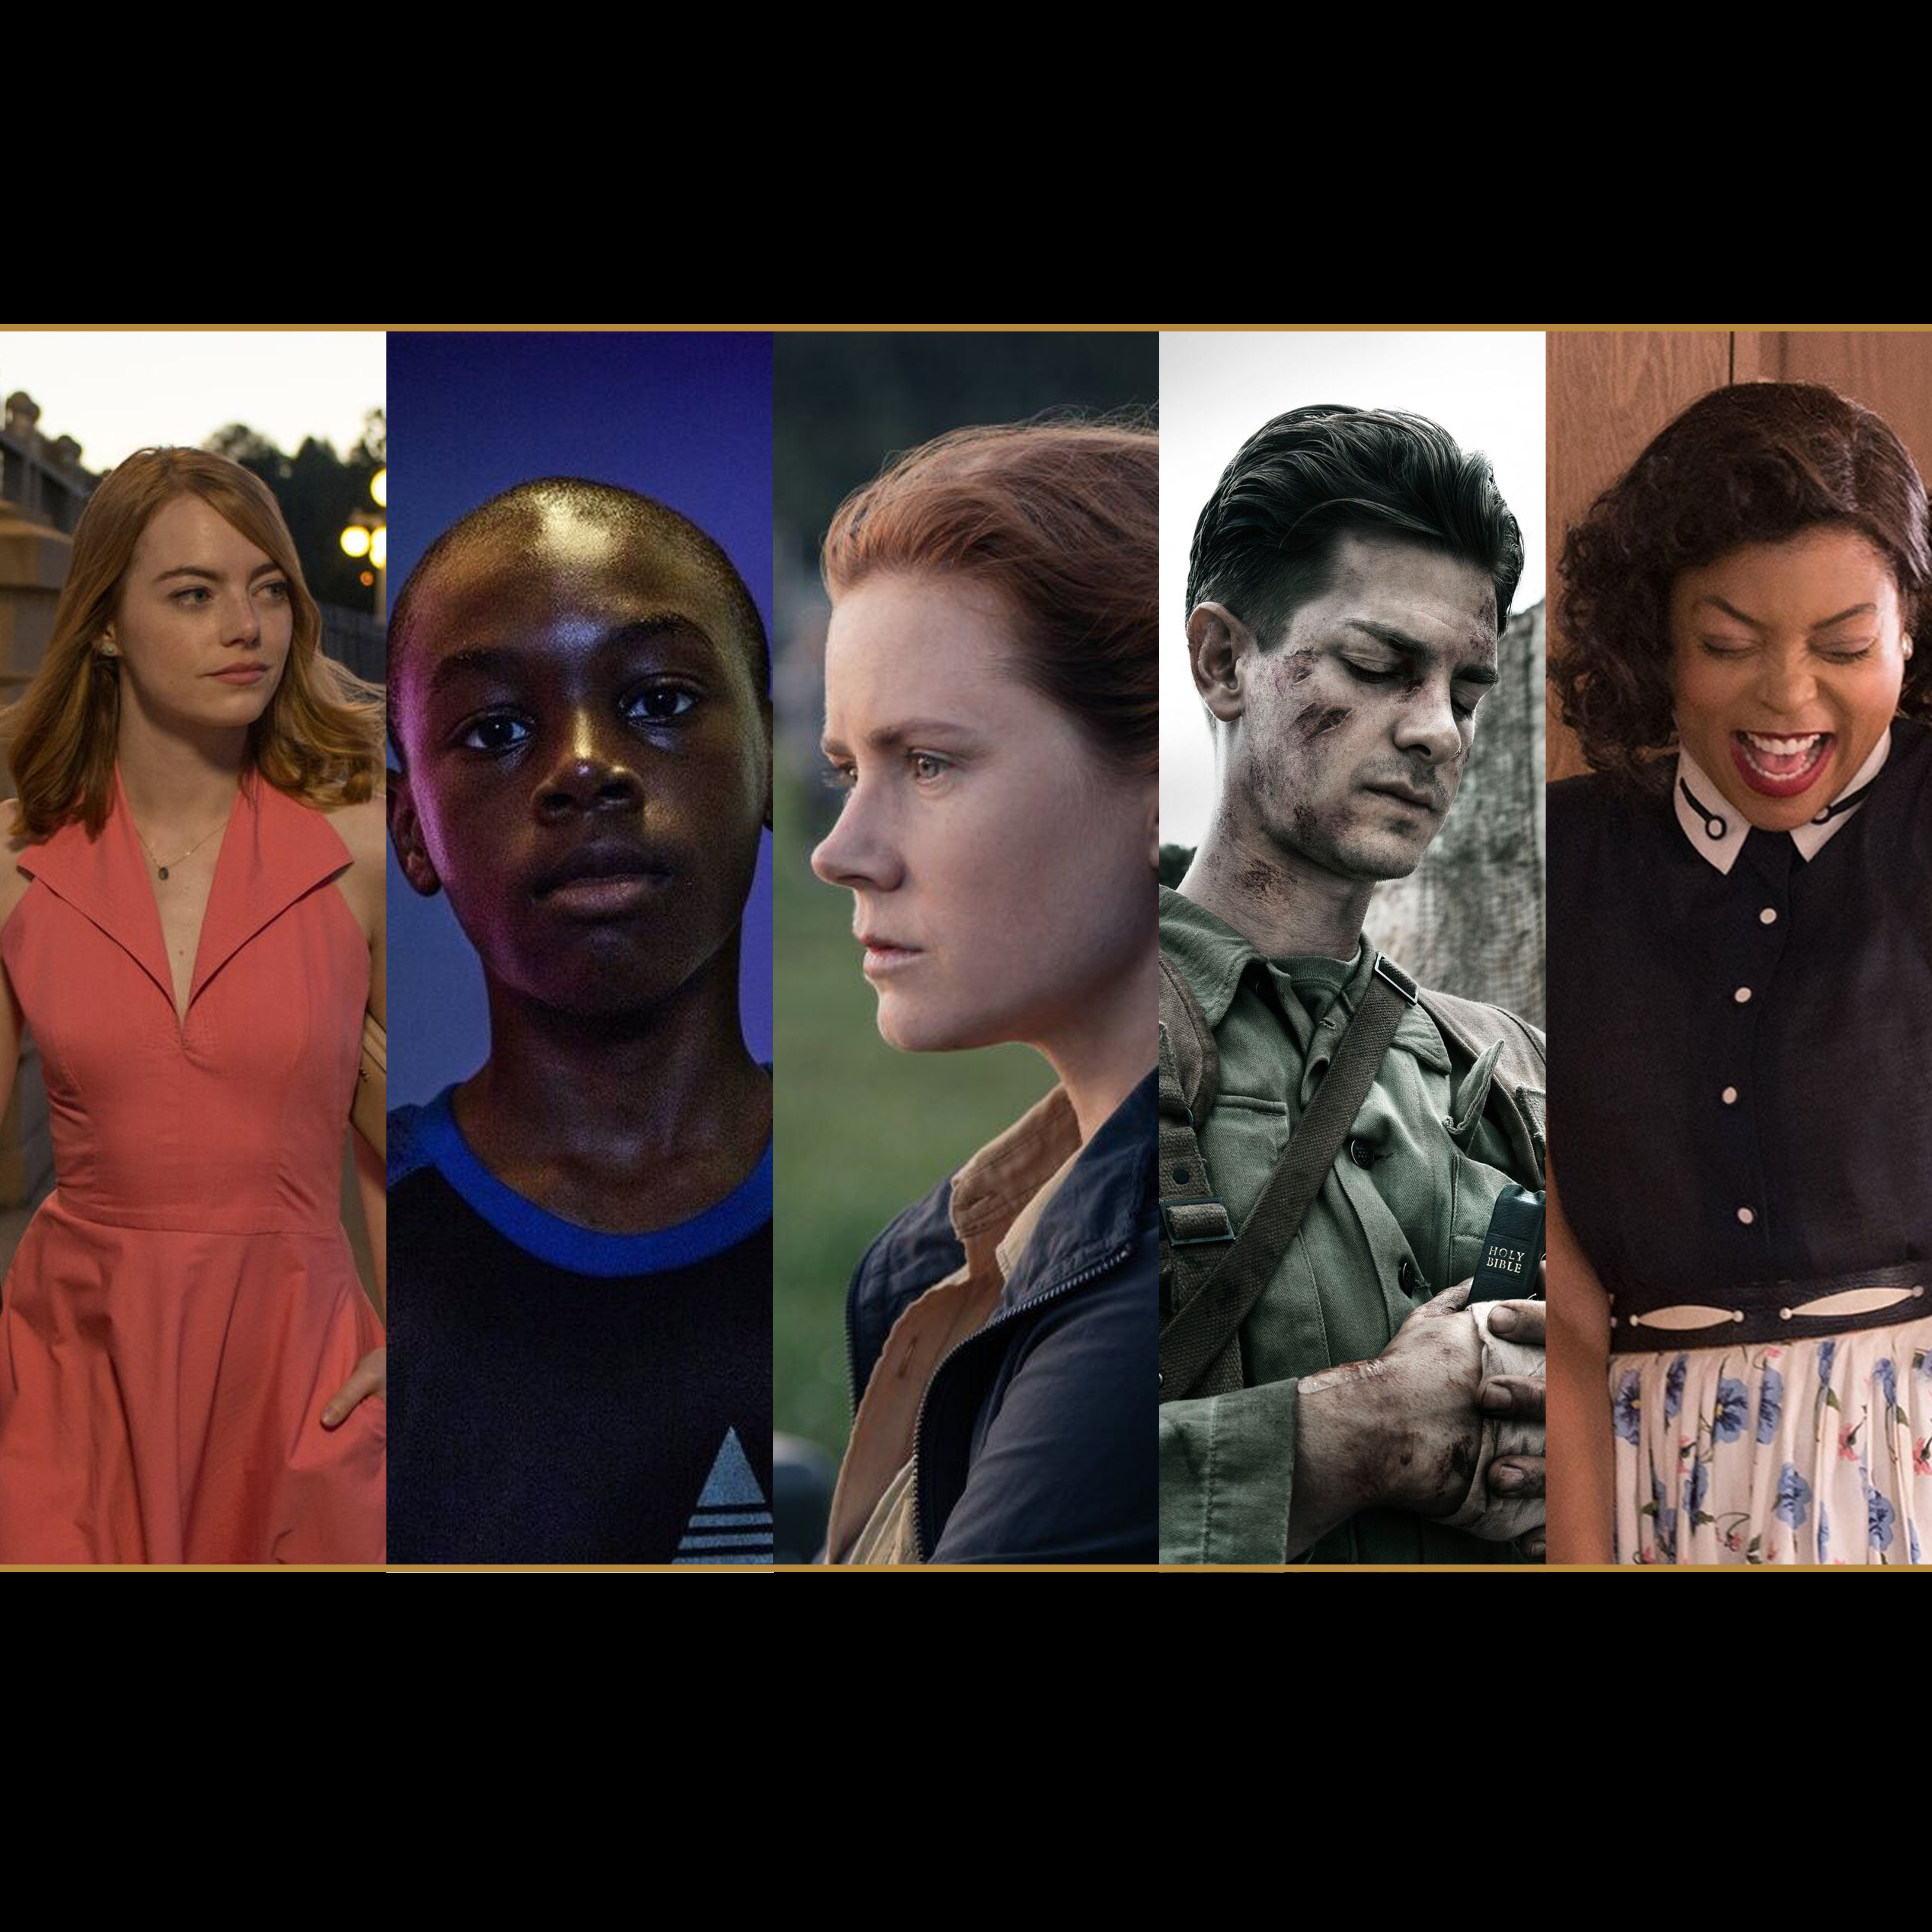 Best Picture Nominations 2017 Oscars - Oscars 2017 News | 89th ...